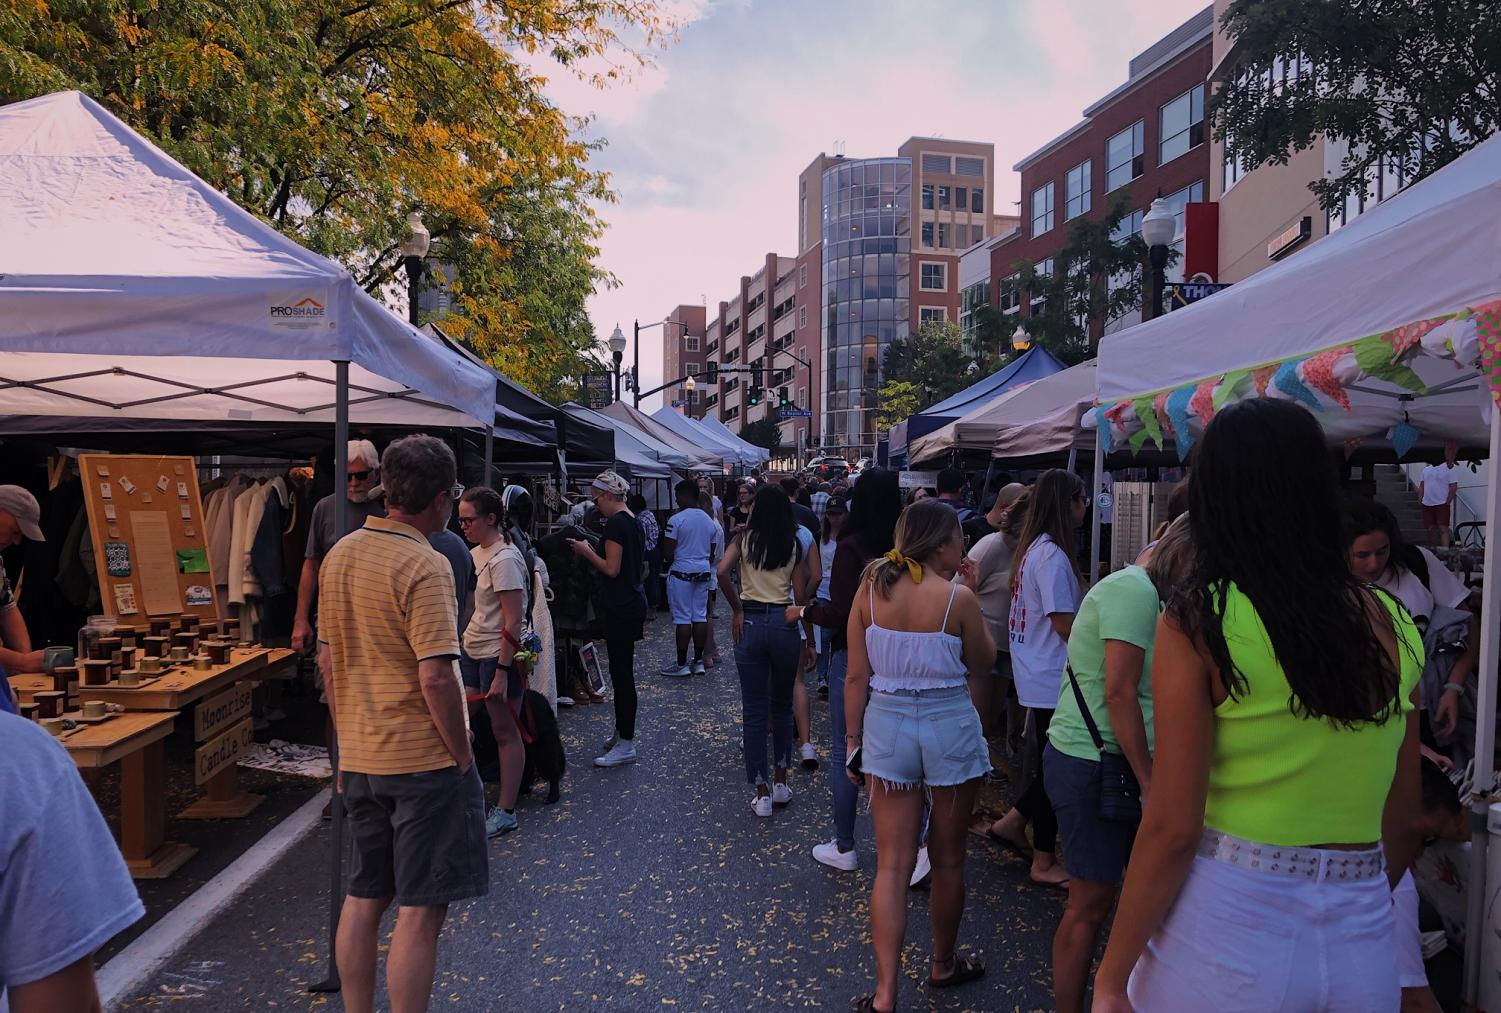 """Many different people walk and shop at vendors booths. """"I've walked by Pop-Up Avenue a couple times but this is the first time I've spent time looking at the vendors,"""" Sarah Koenig, a State College resident, said. Pop Up Avenue took place September 28th."""